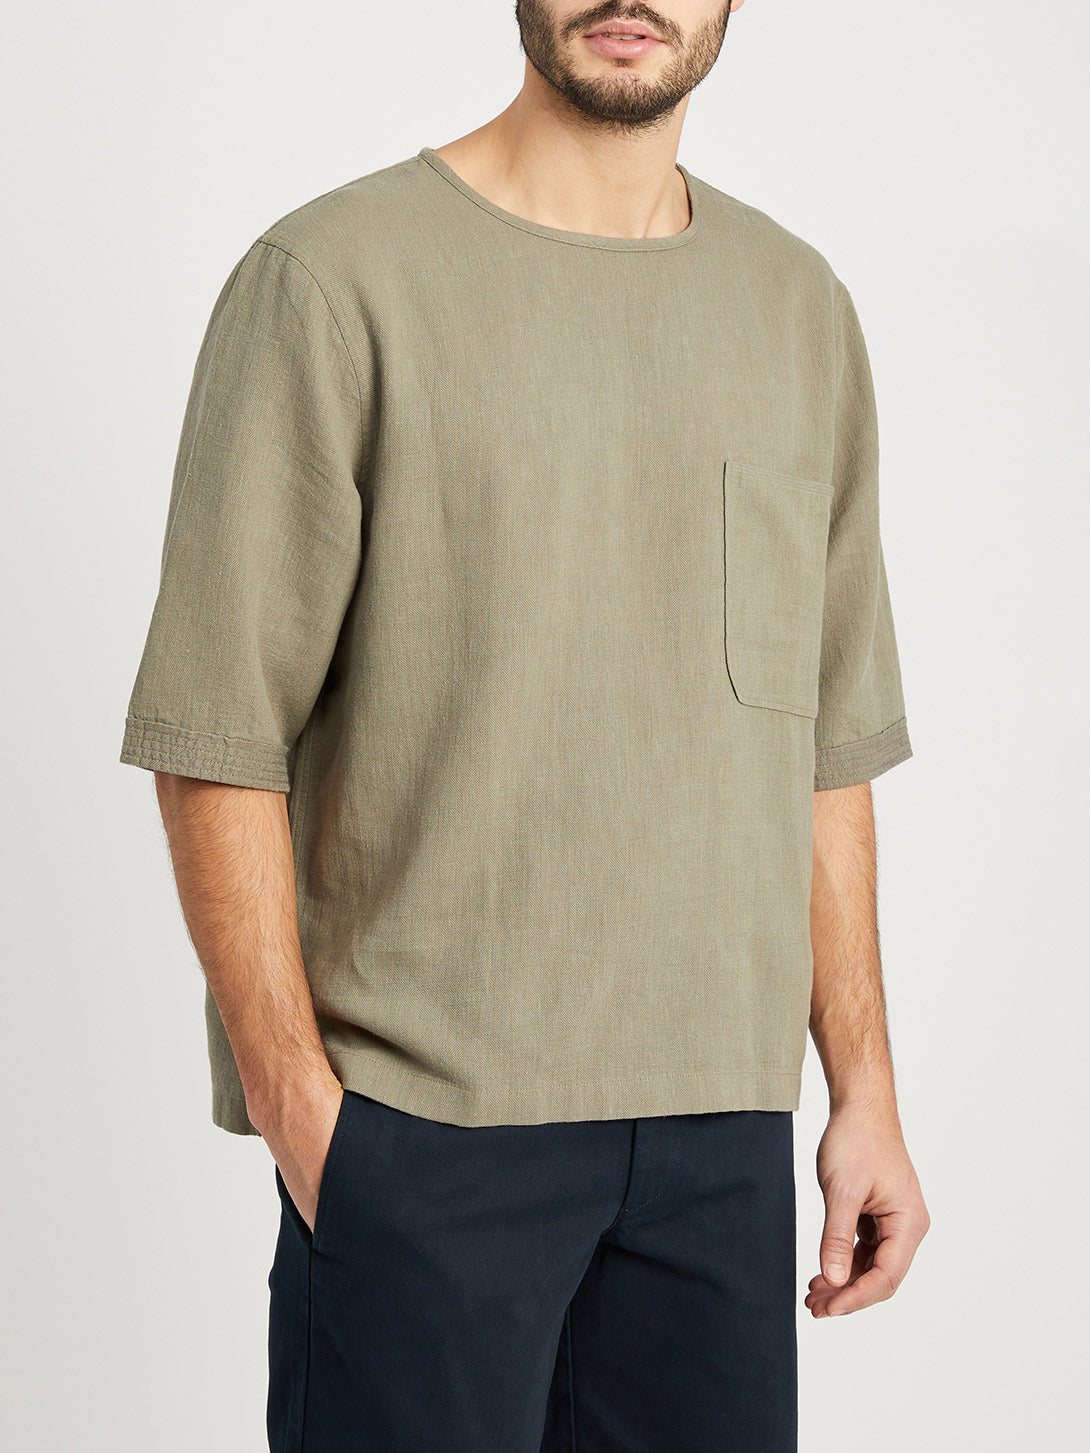 LIGHT GREEN t shirts for men baseile pocket tee ons clothing